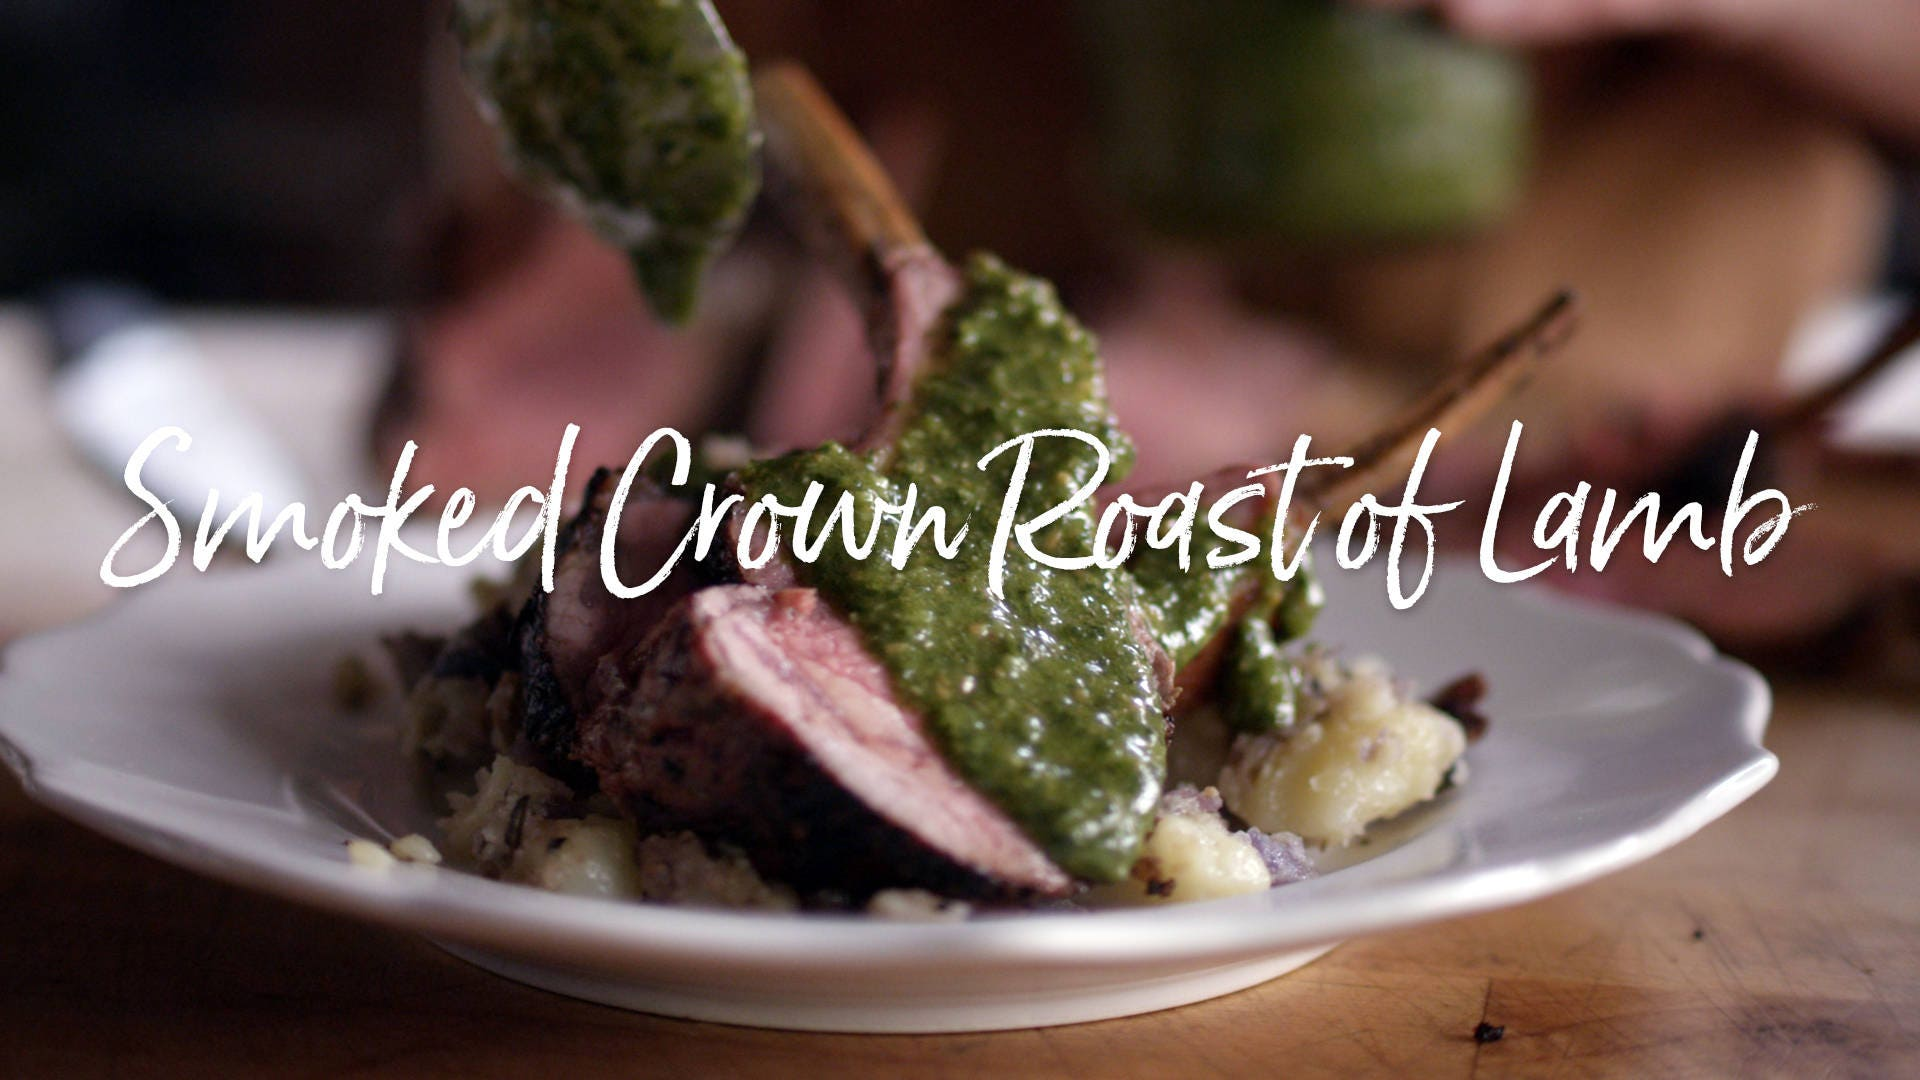 Recipe for Smoked Crown Roast of Lamb